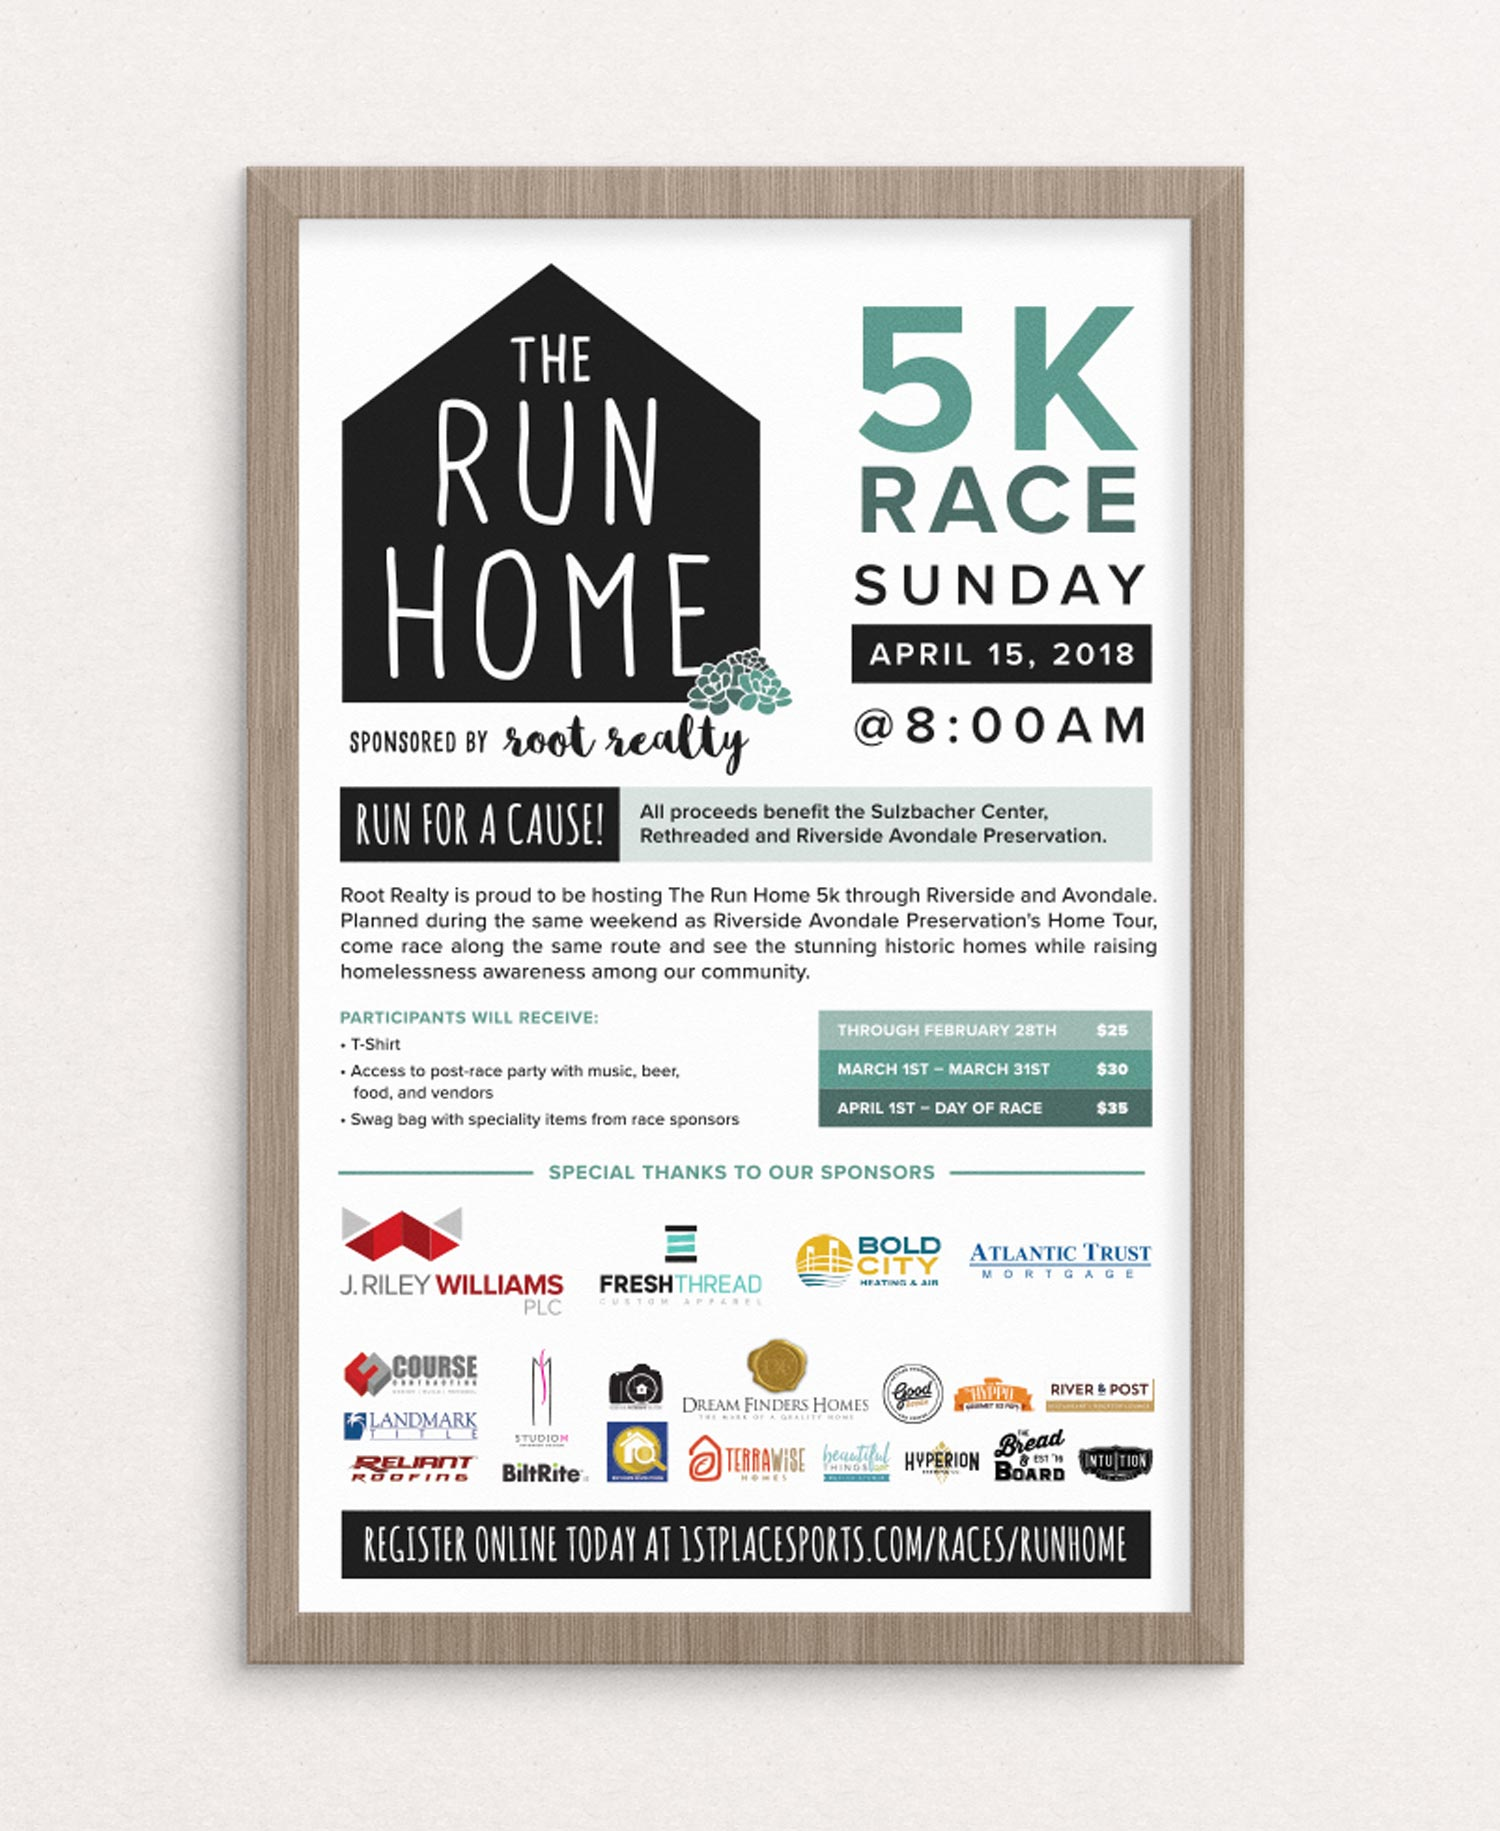 The Run Home 5K in Jacksonville, Florida poster.